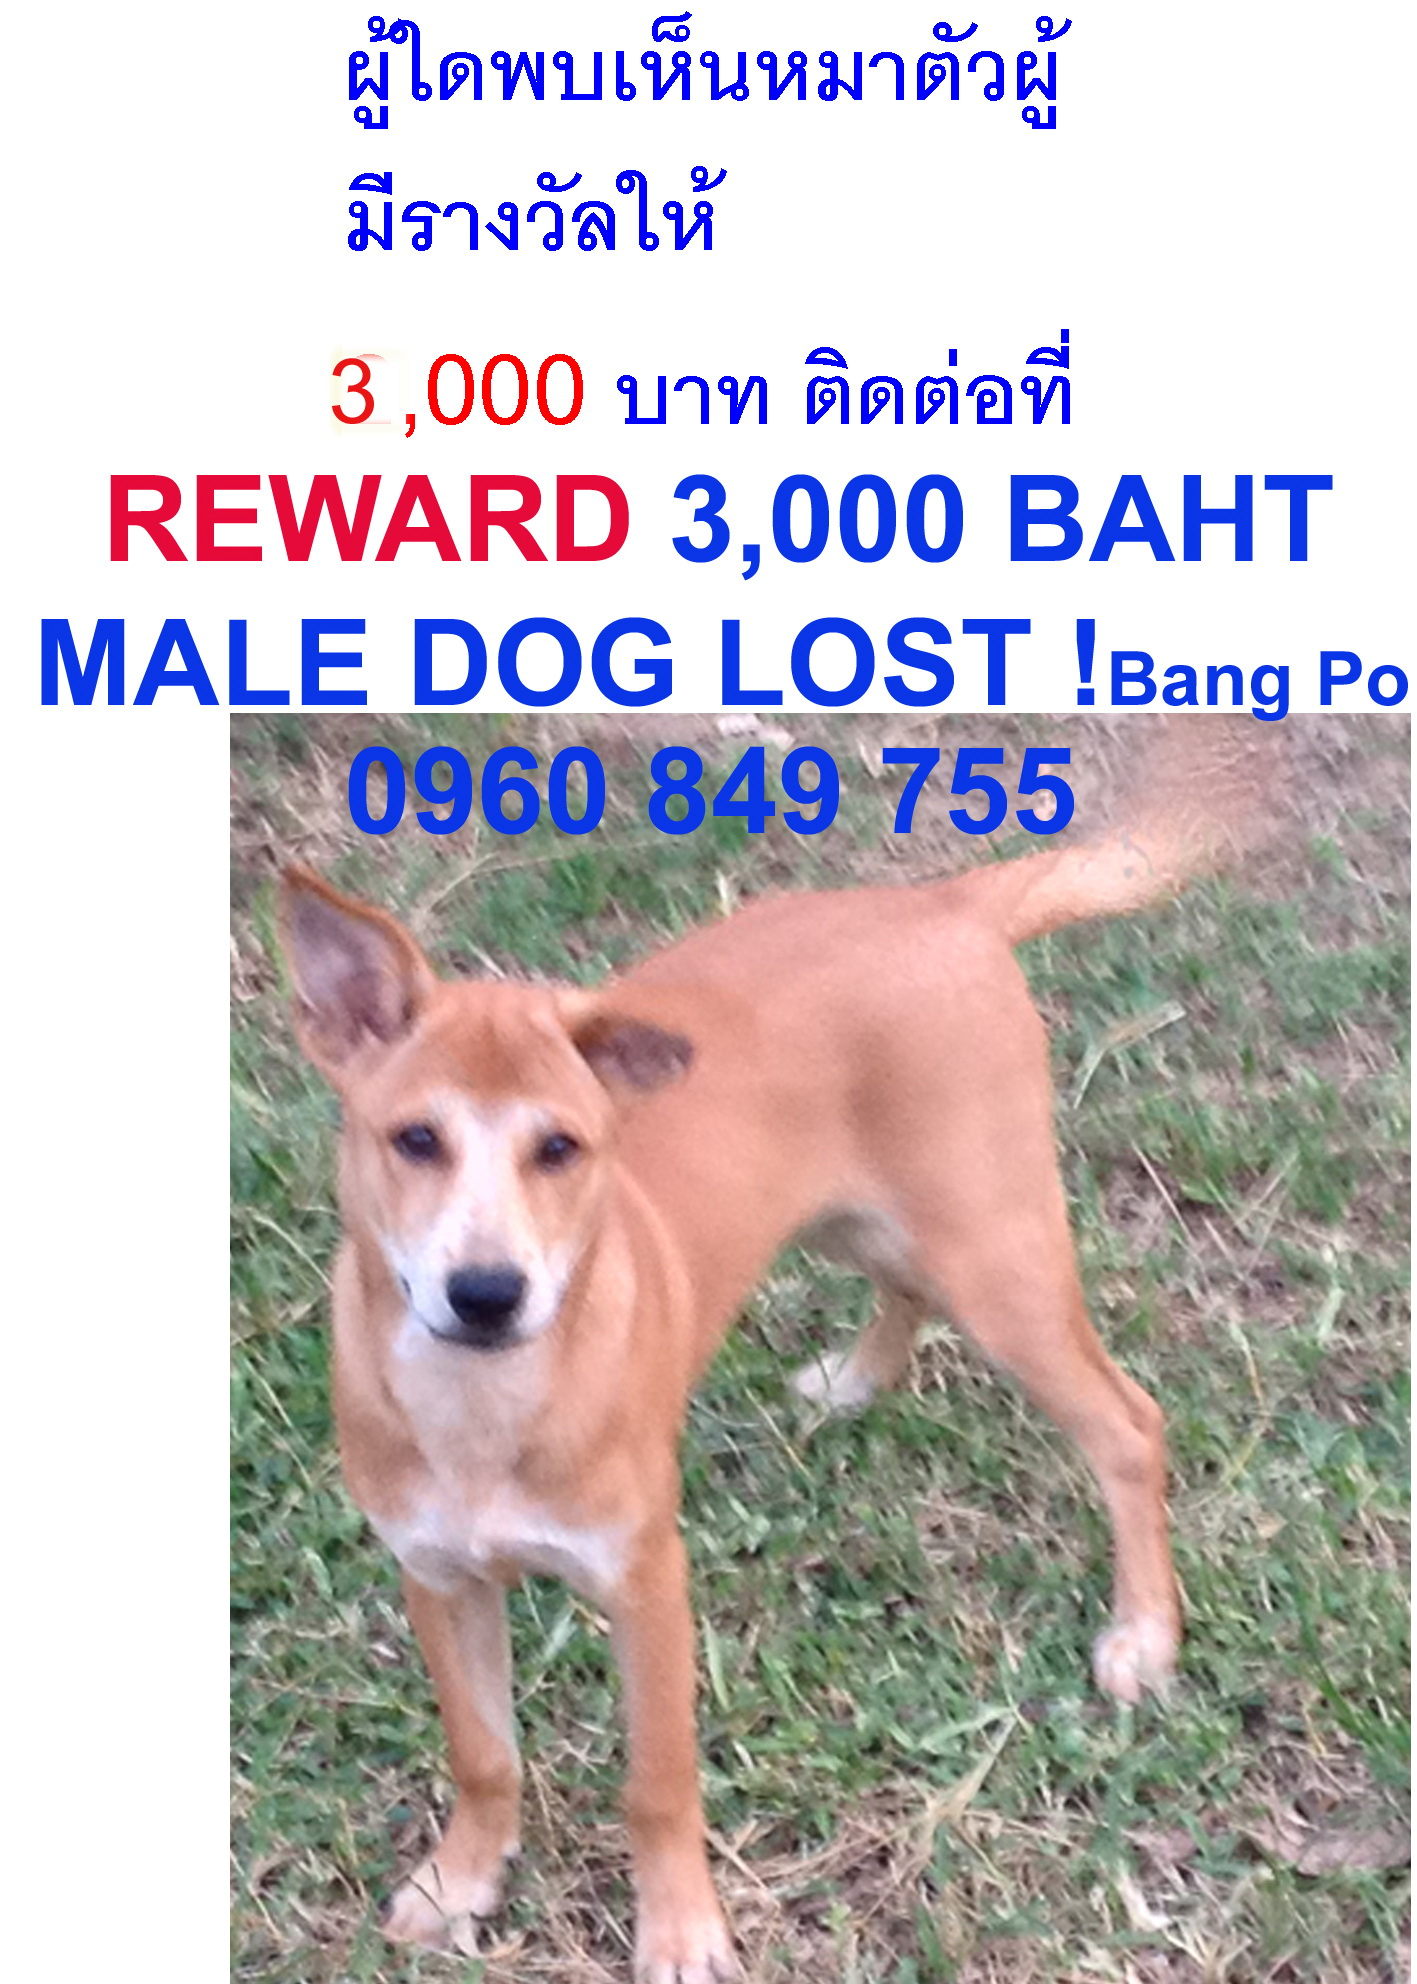 Lost Dog in Bang Po | Samui Times